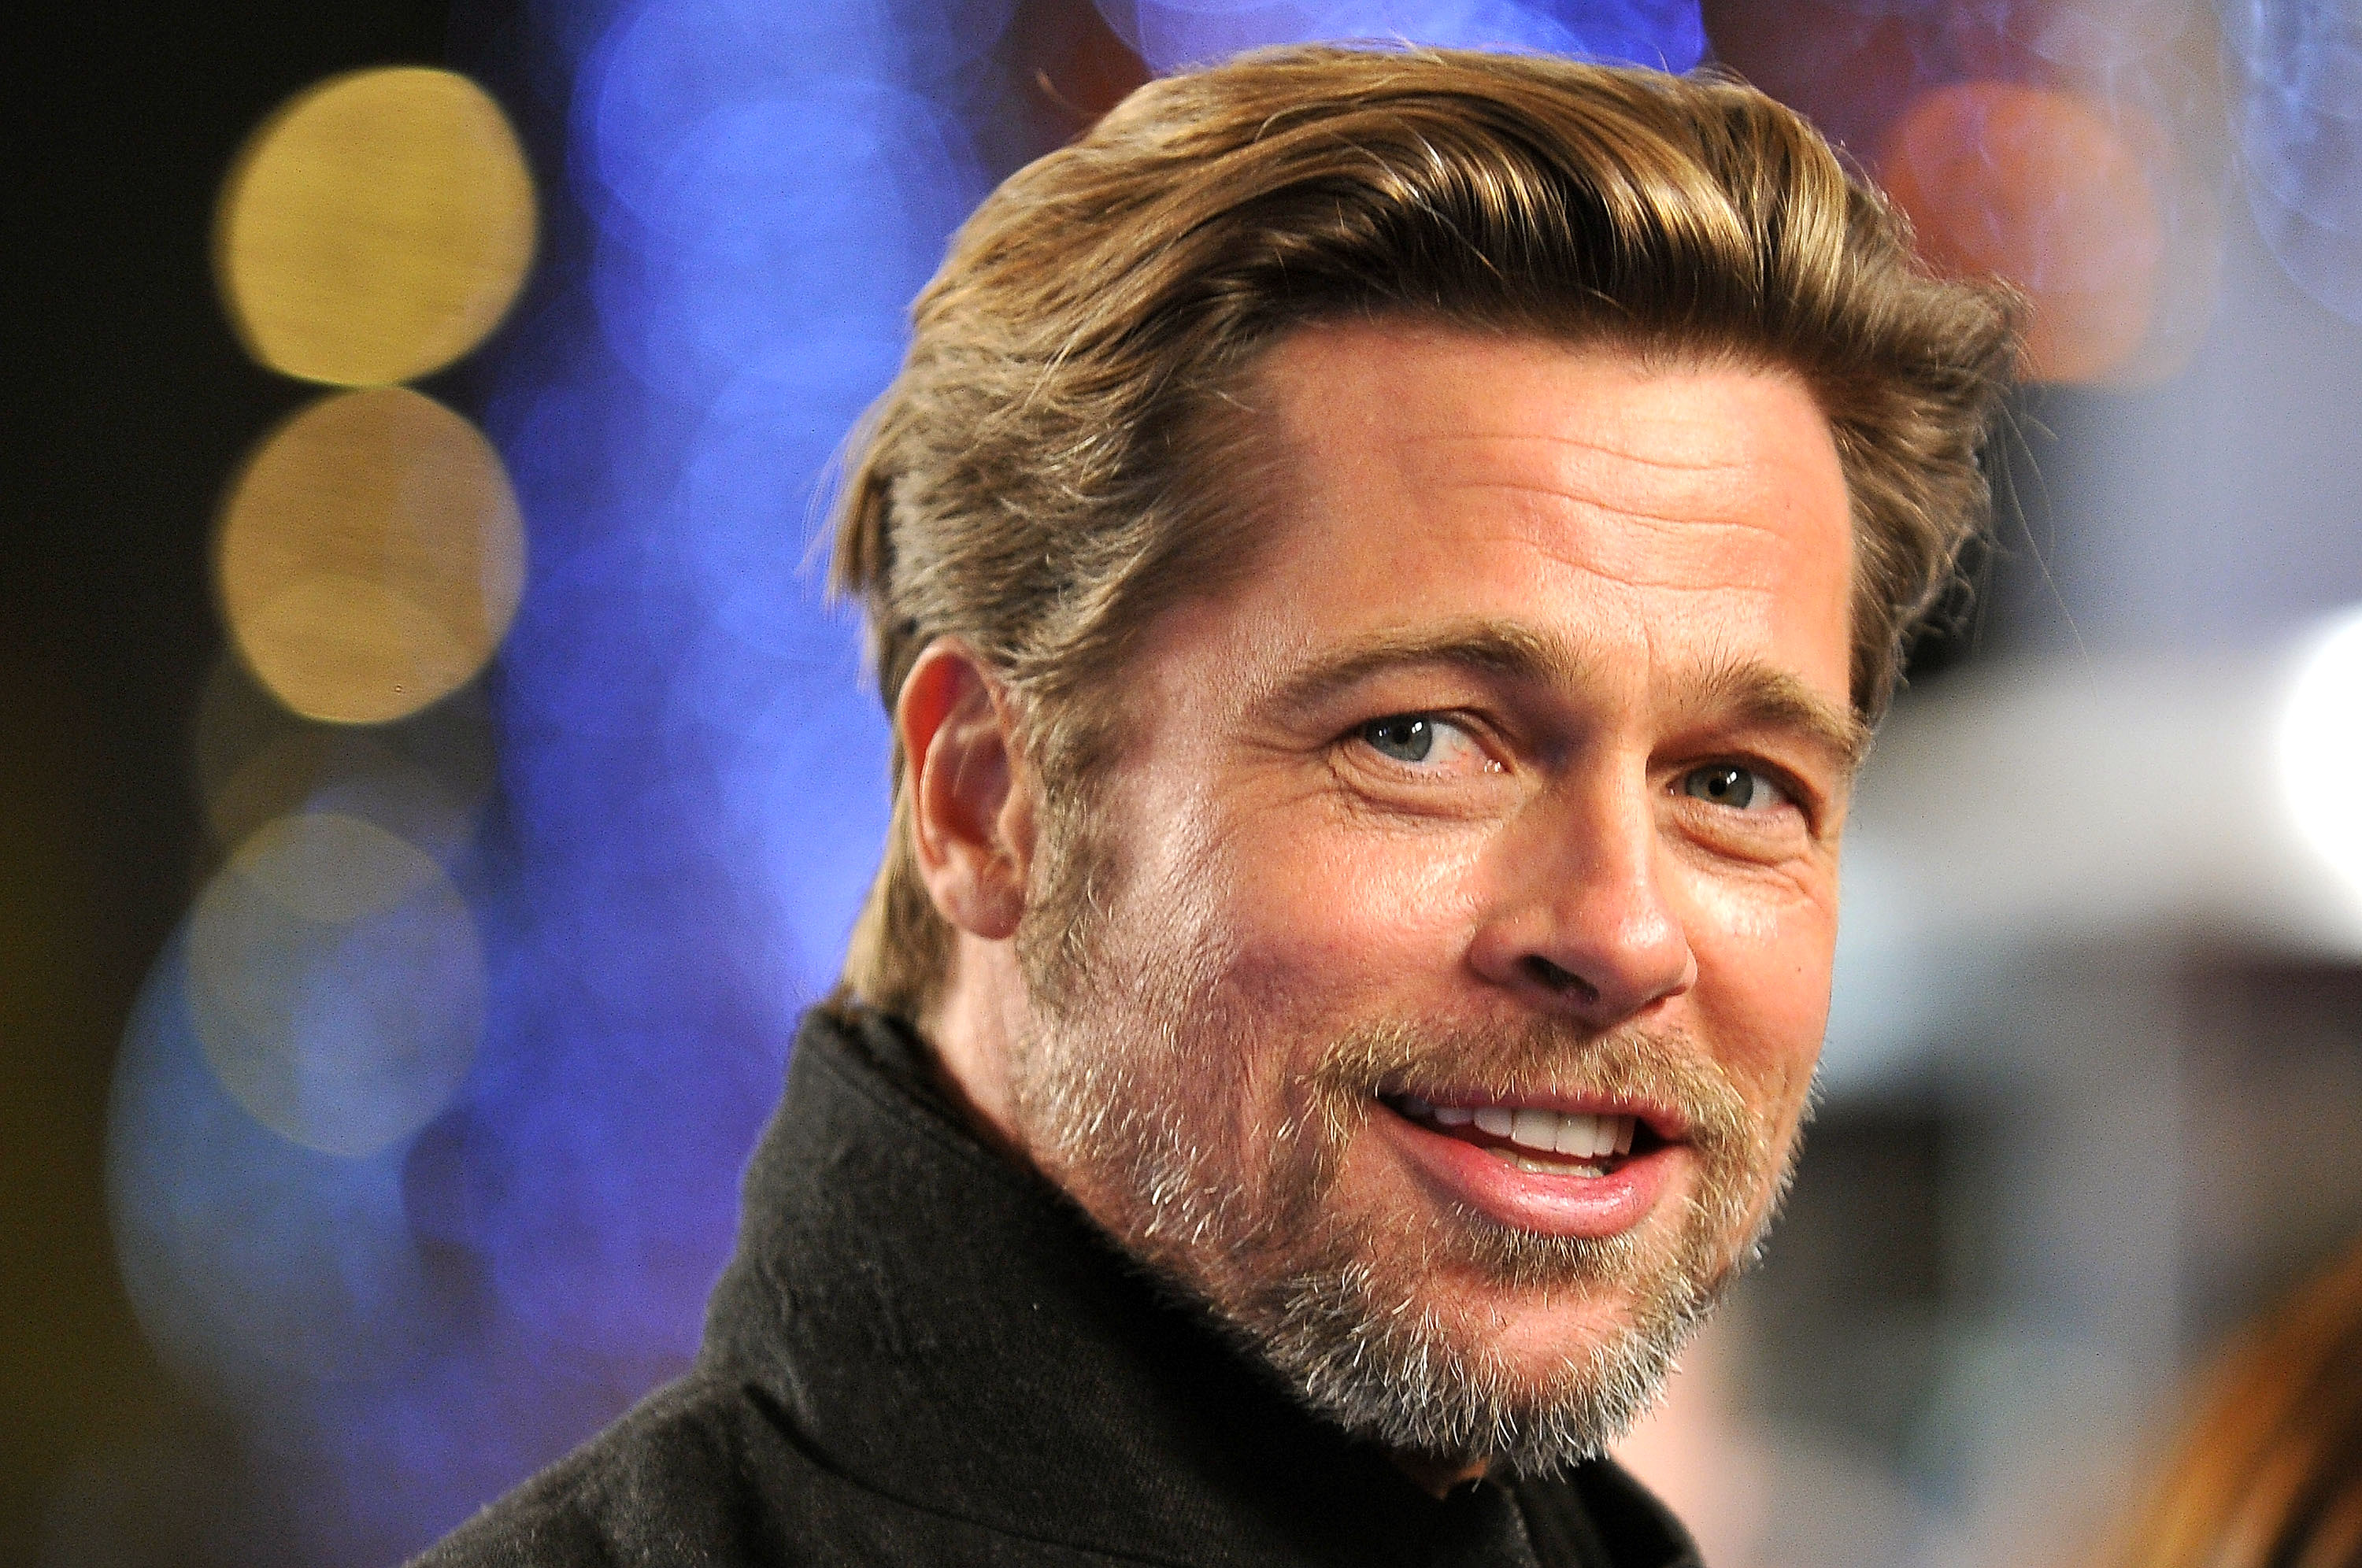 brad-pitt-hair Megamind - PARIS – NOVEMBER 29: Brad Pitt attends the 'Megamind' Paris premiere at Cinema UGC Normandie on November 29, 2010 in Paris, France. (Photo by Pascal Le Segretain/Getty Images)